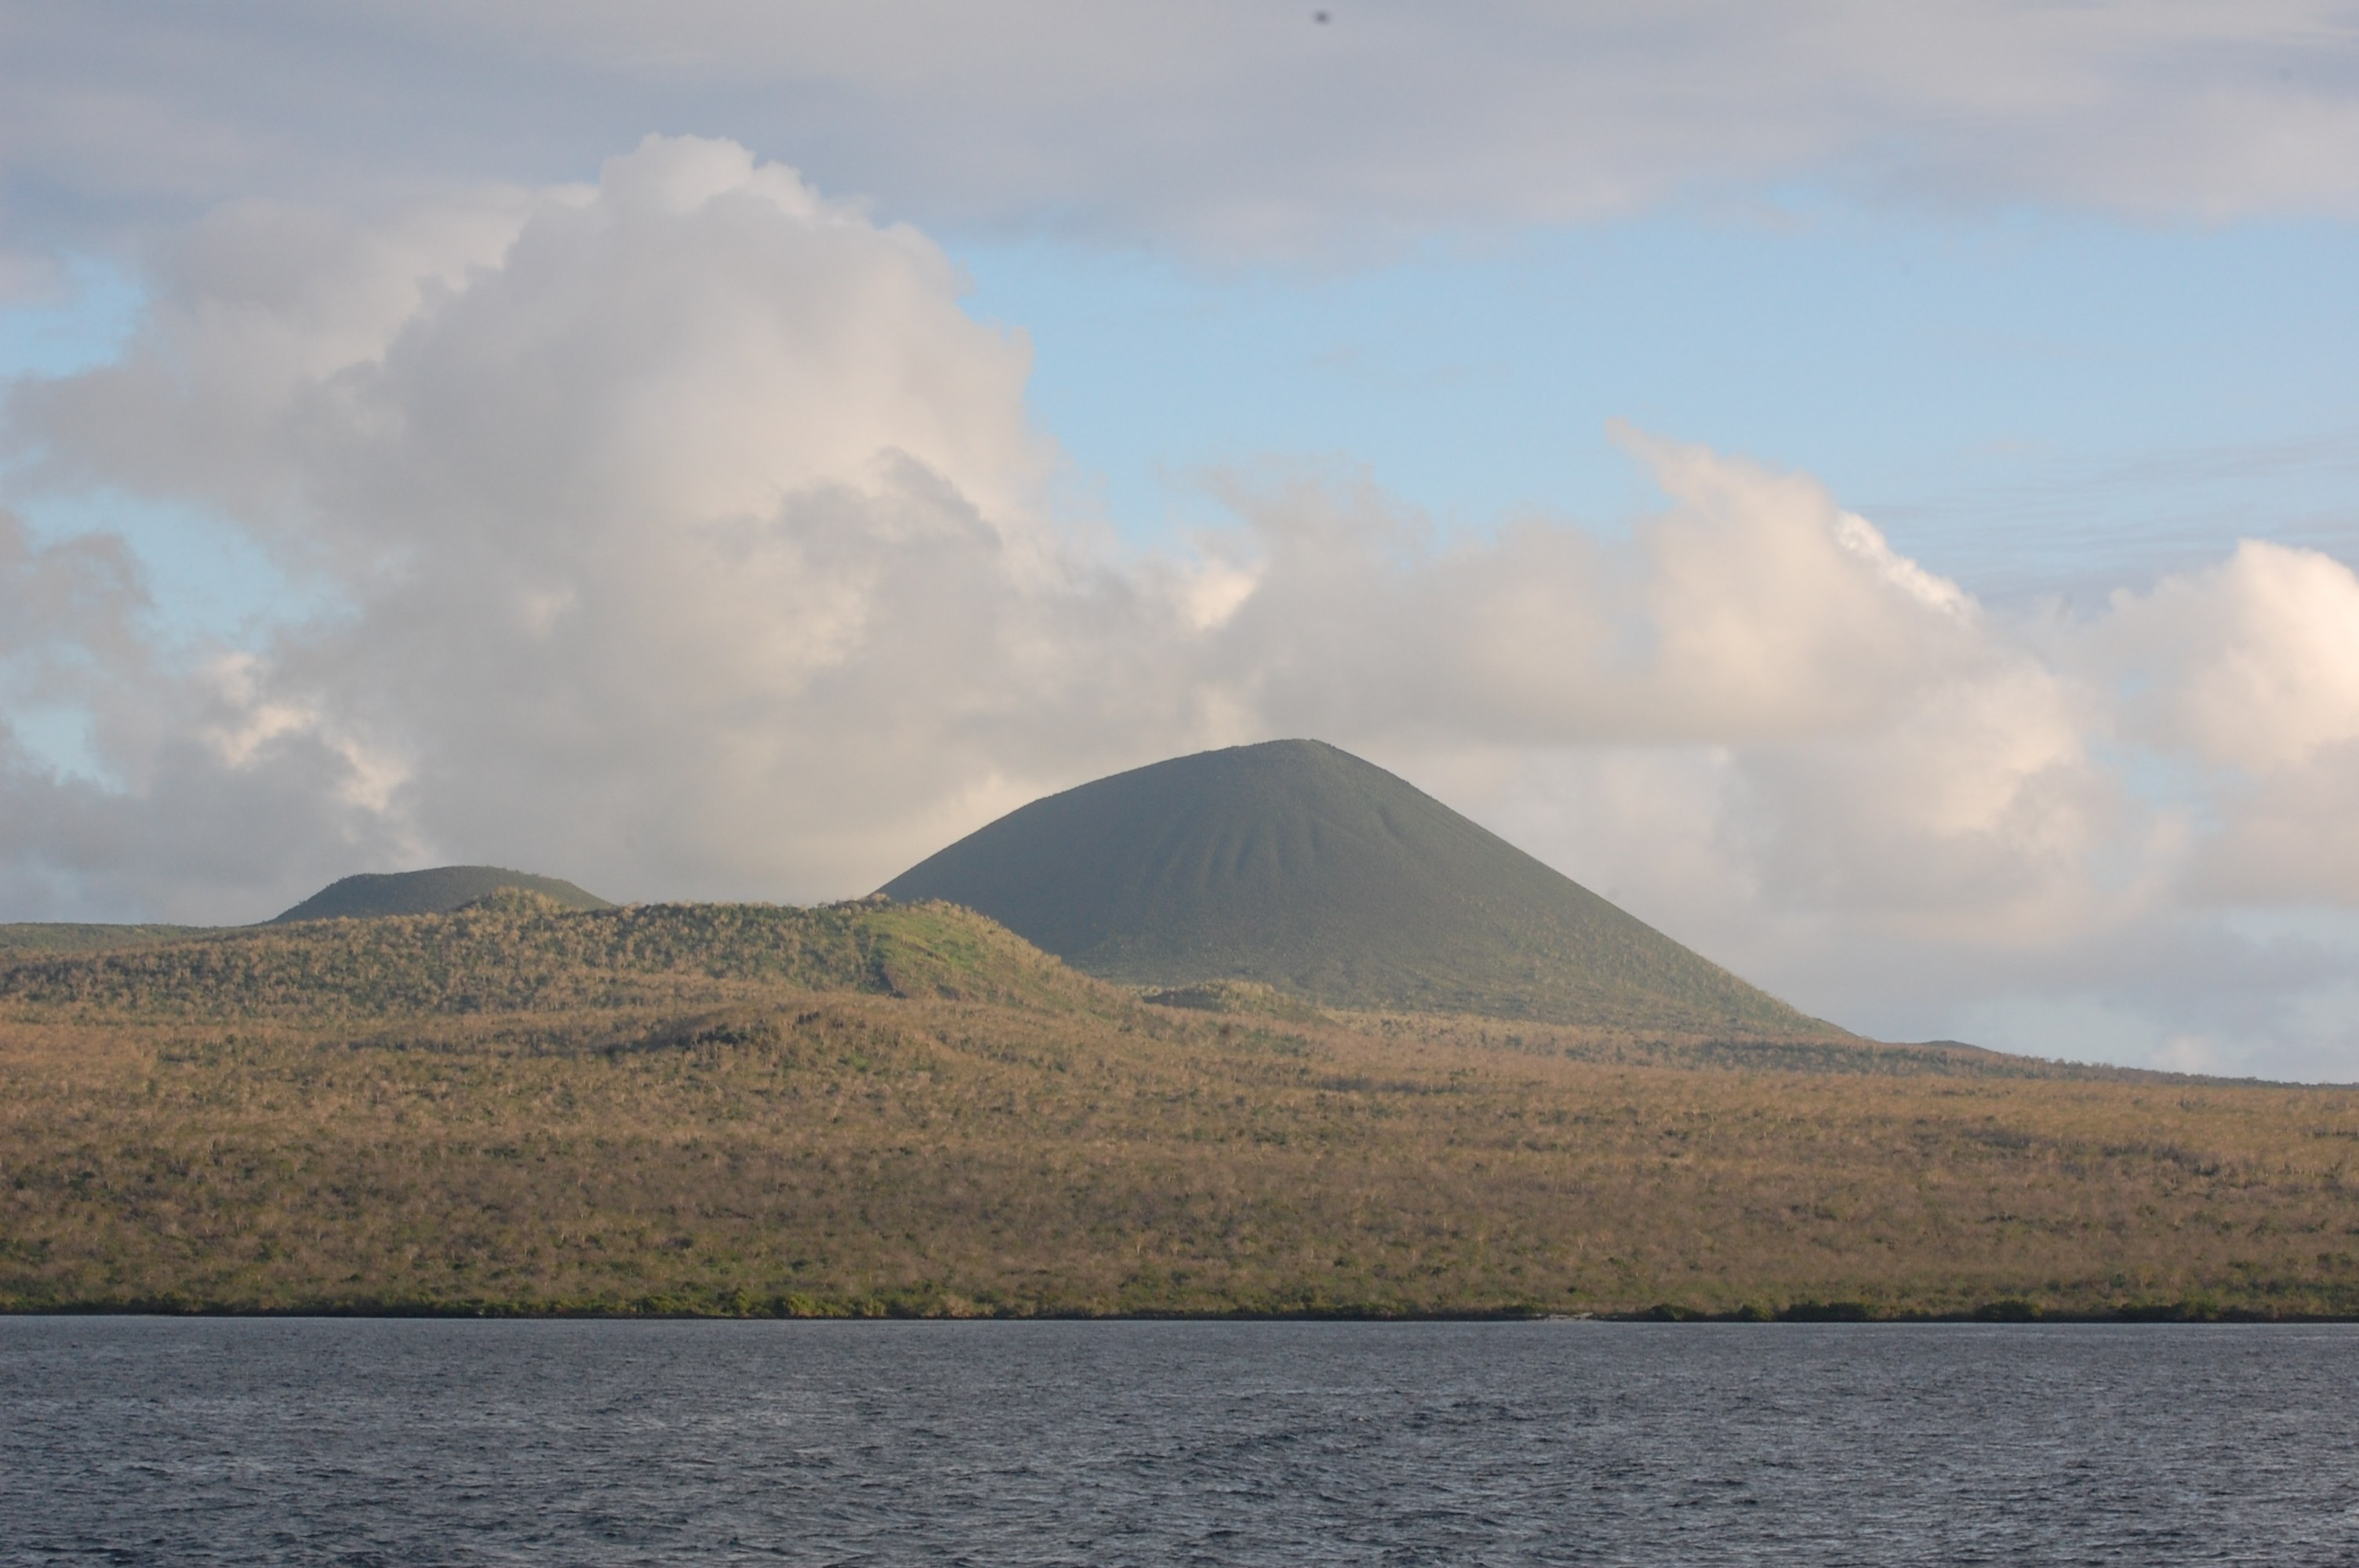 A nice little cinder cone peaking up from the island.